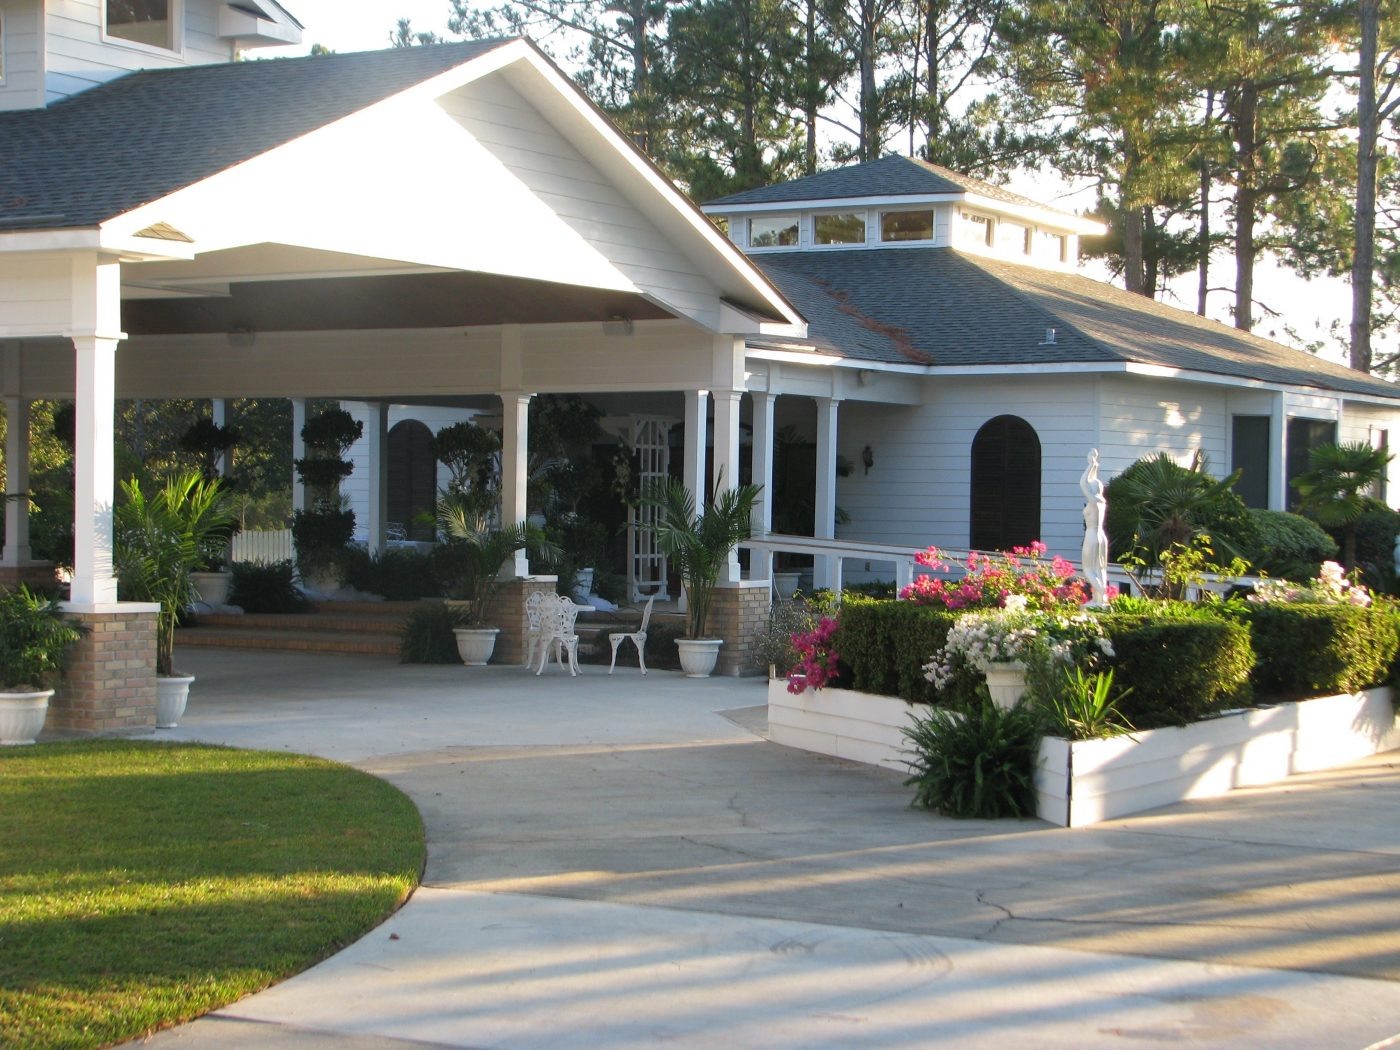 Gulf Shores Wedding Chapel - Pavilion